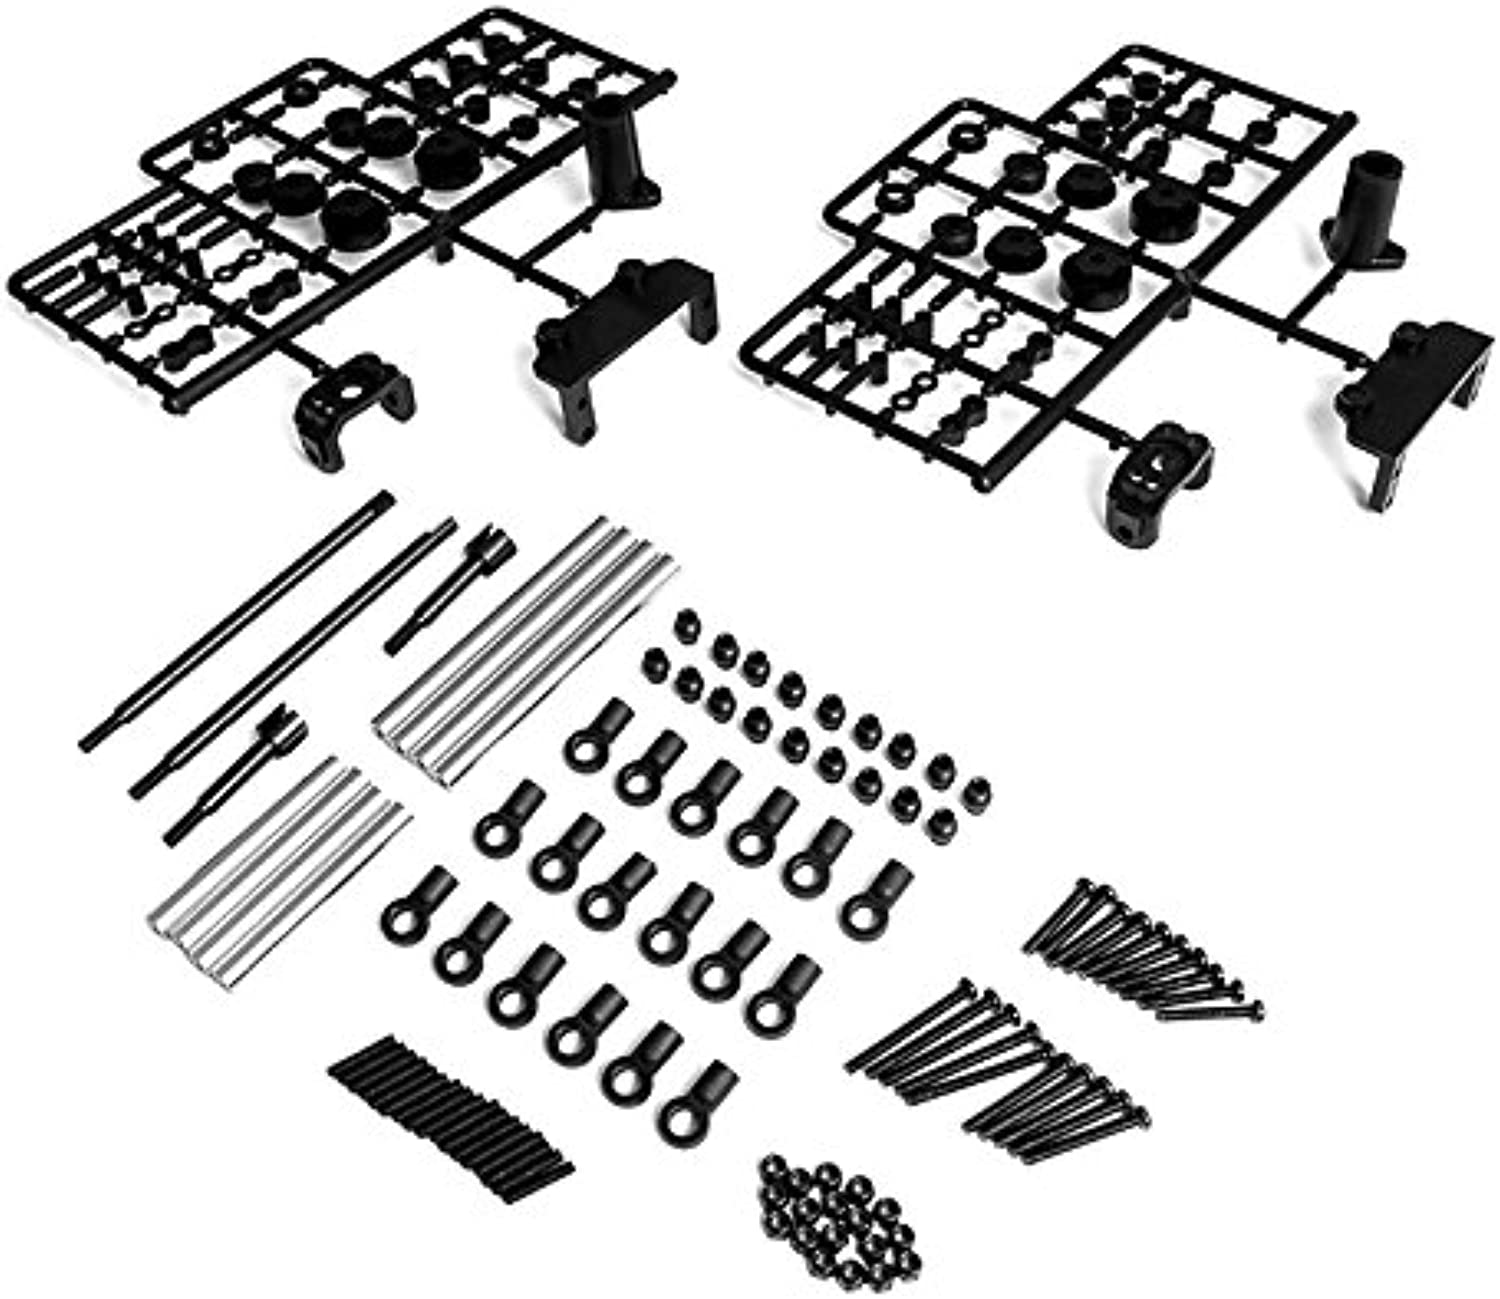 Gmade 30040 4Link Suspension Conversion Kit for Gs01 Chassis Toy